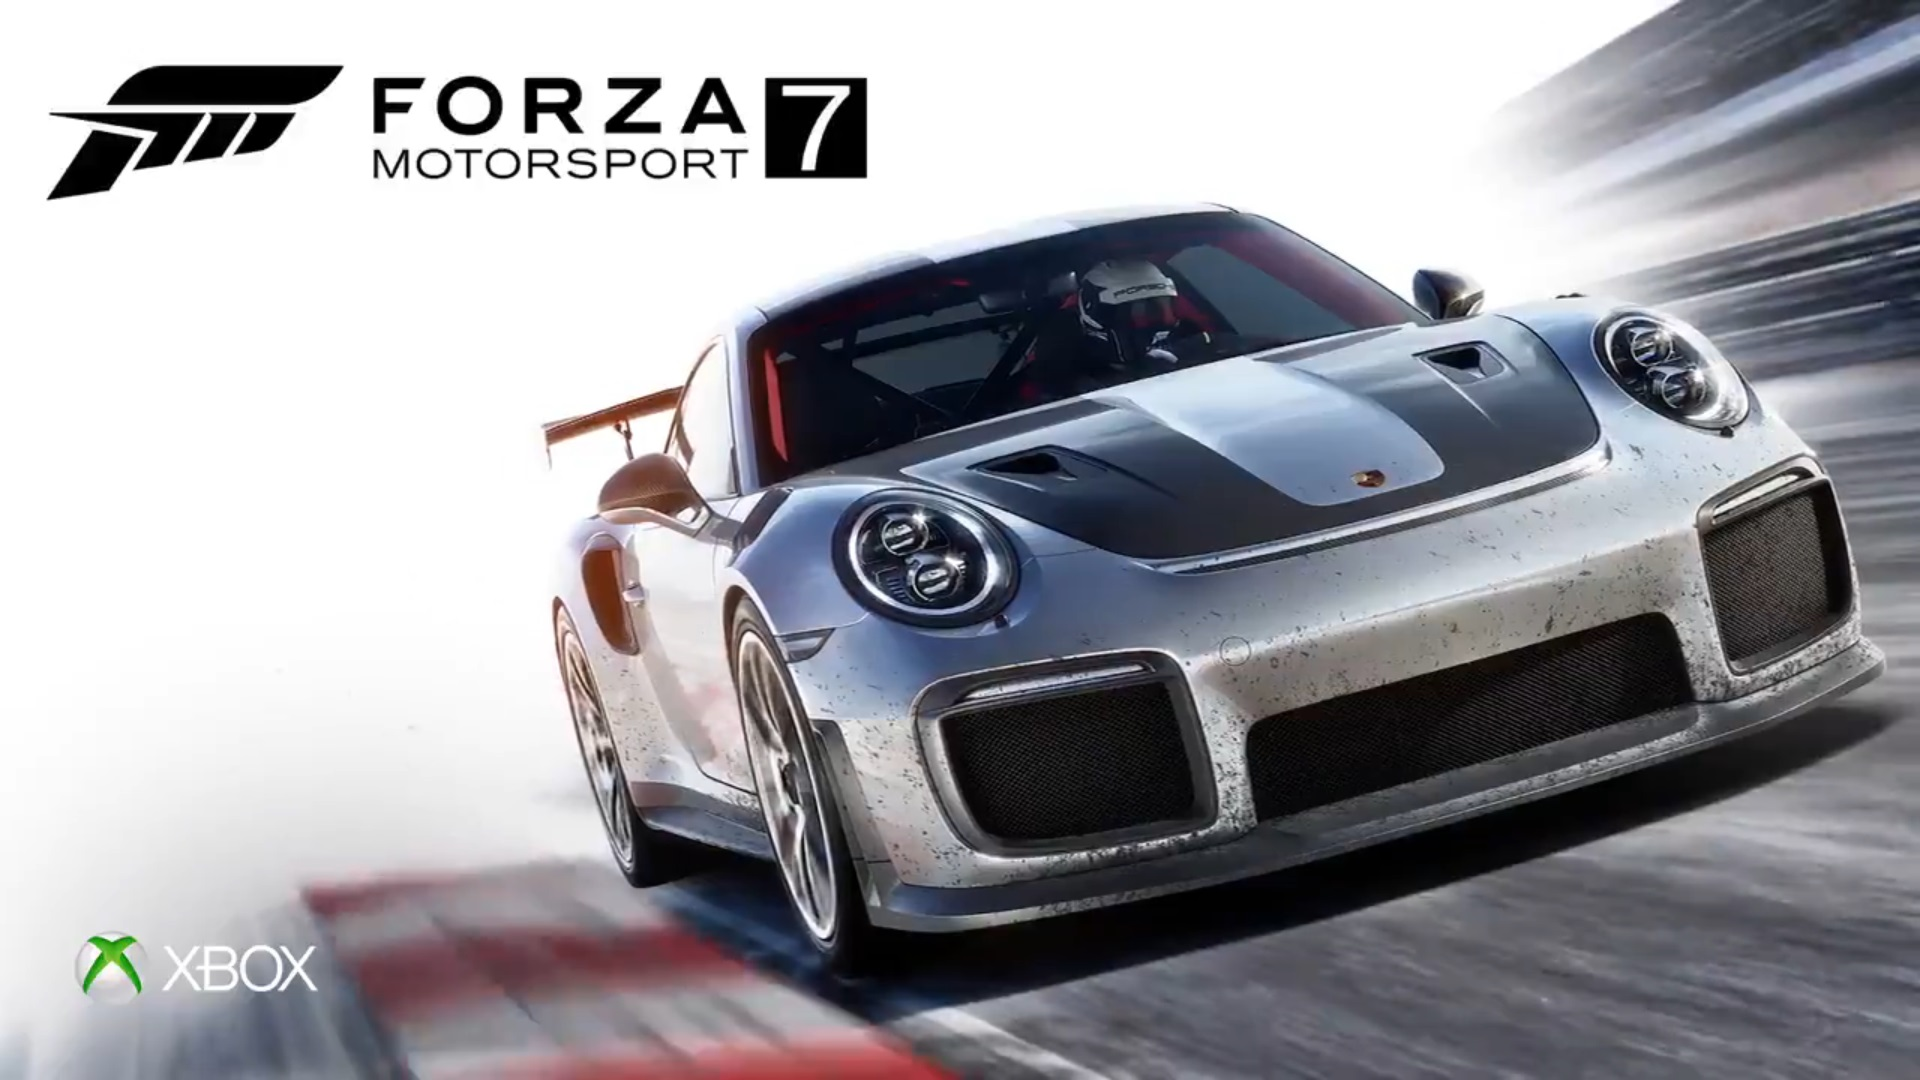 forza-motorsport-7-wallpaper-logo-nat-games